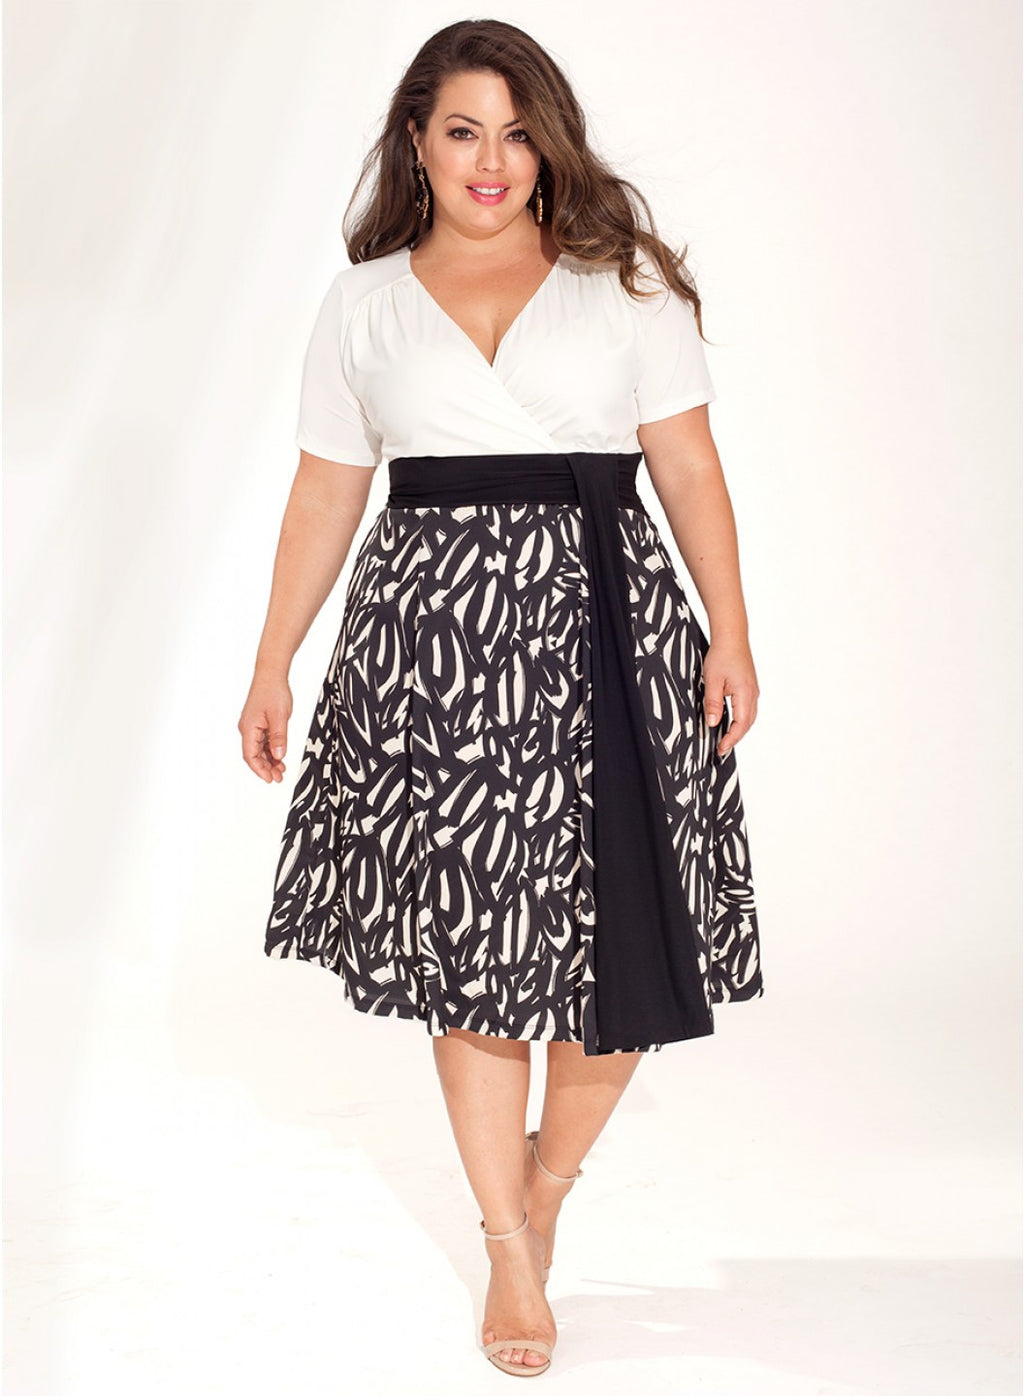 coco-plus-size-cocktail-dress-black-creme